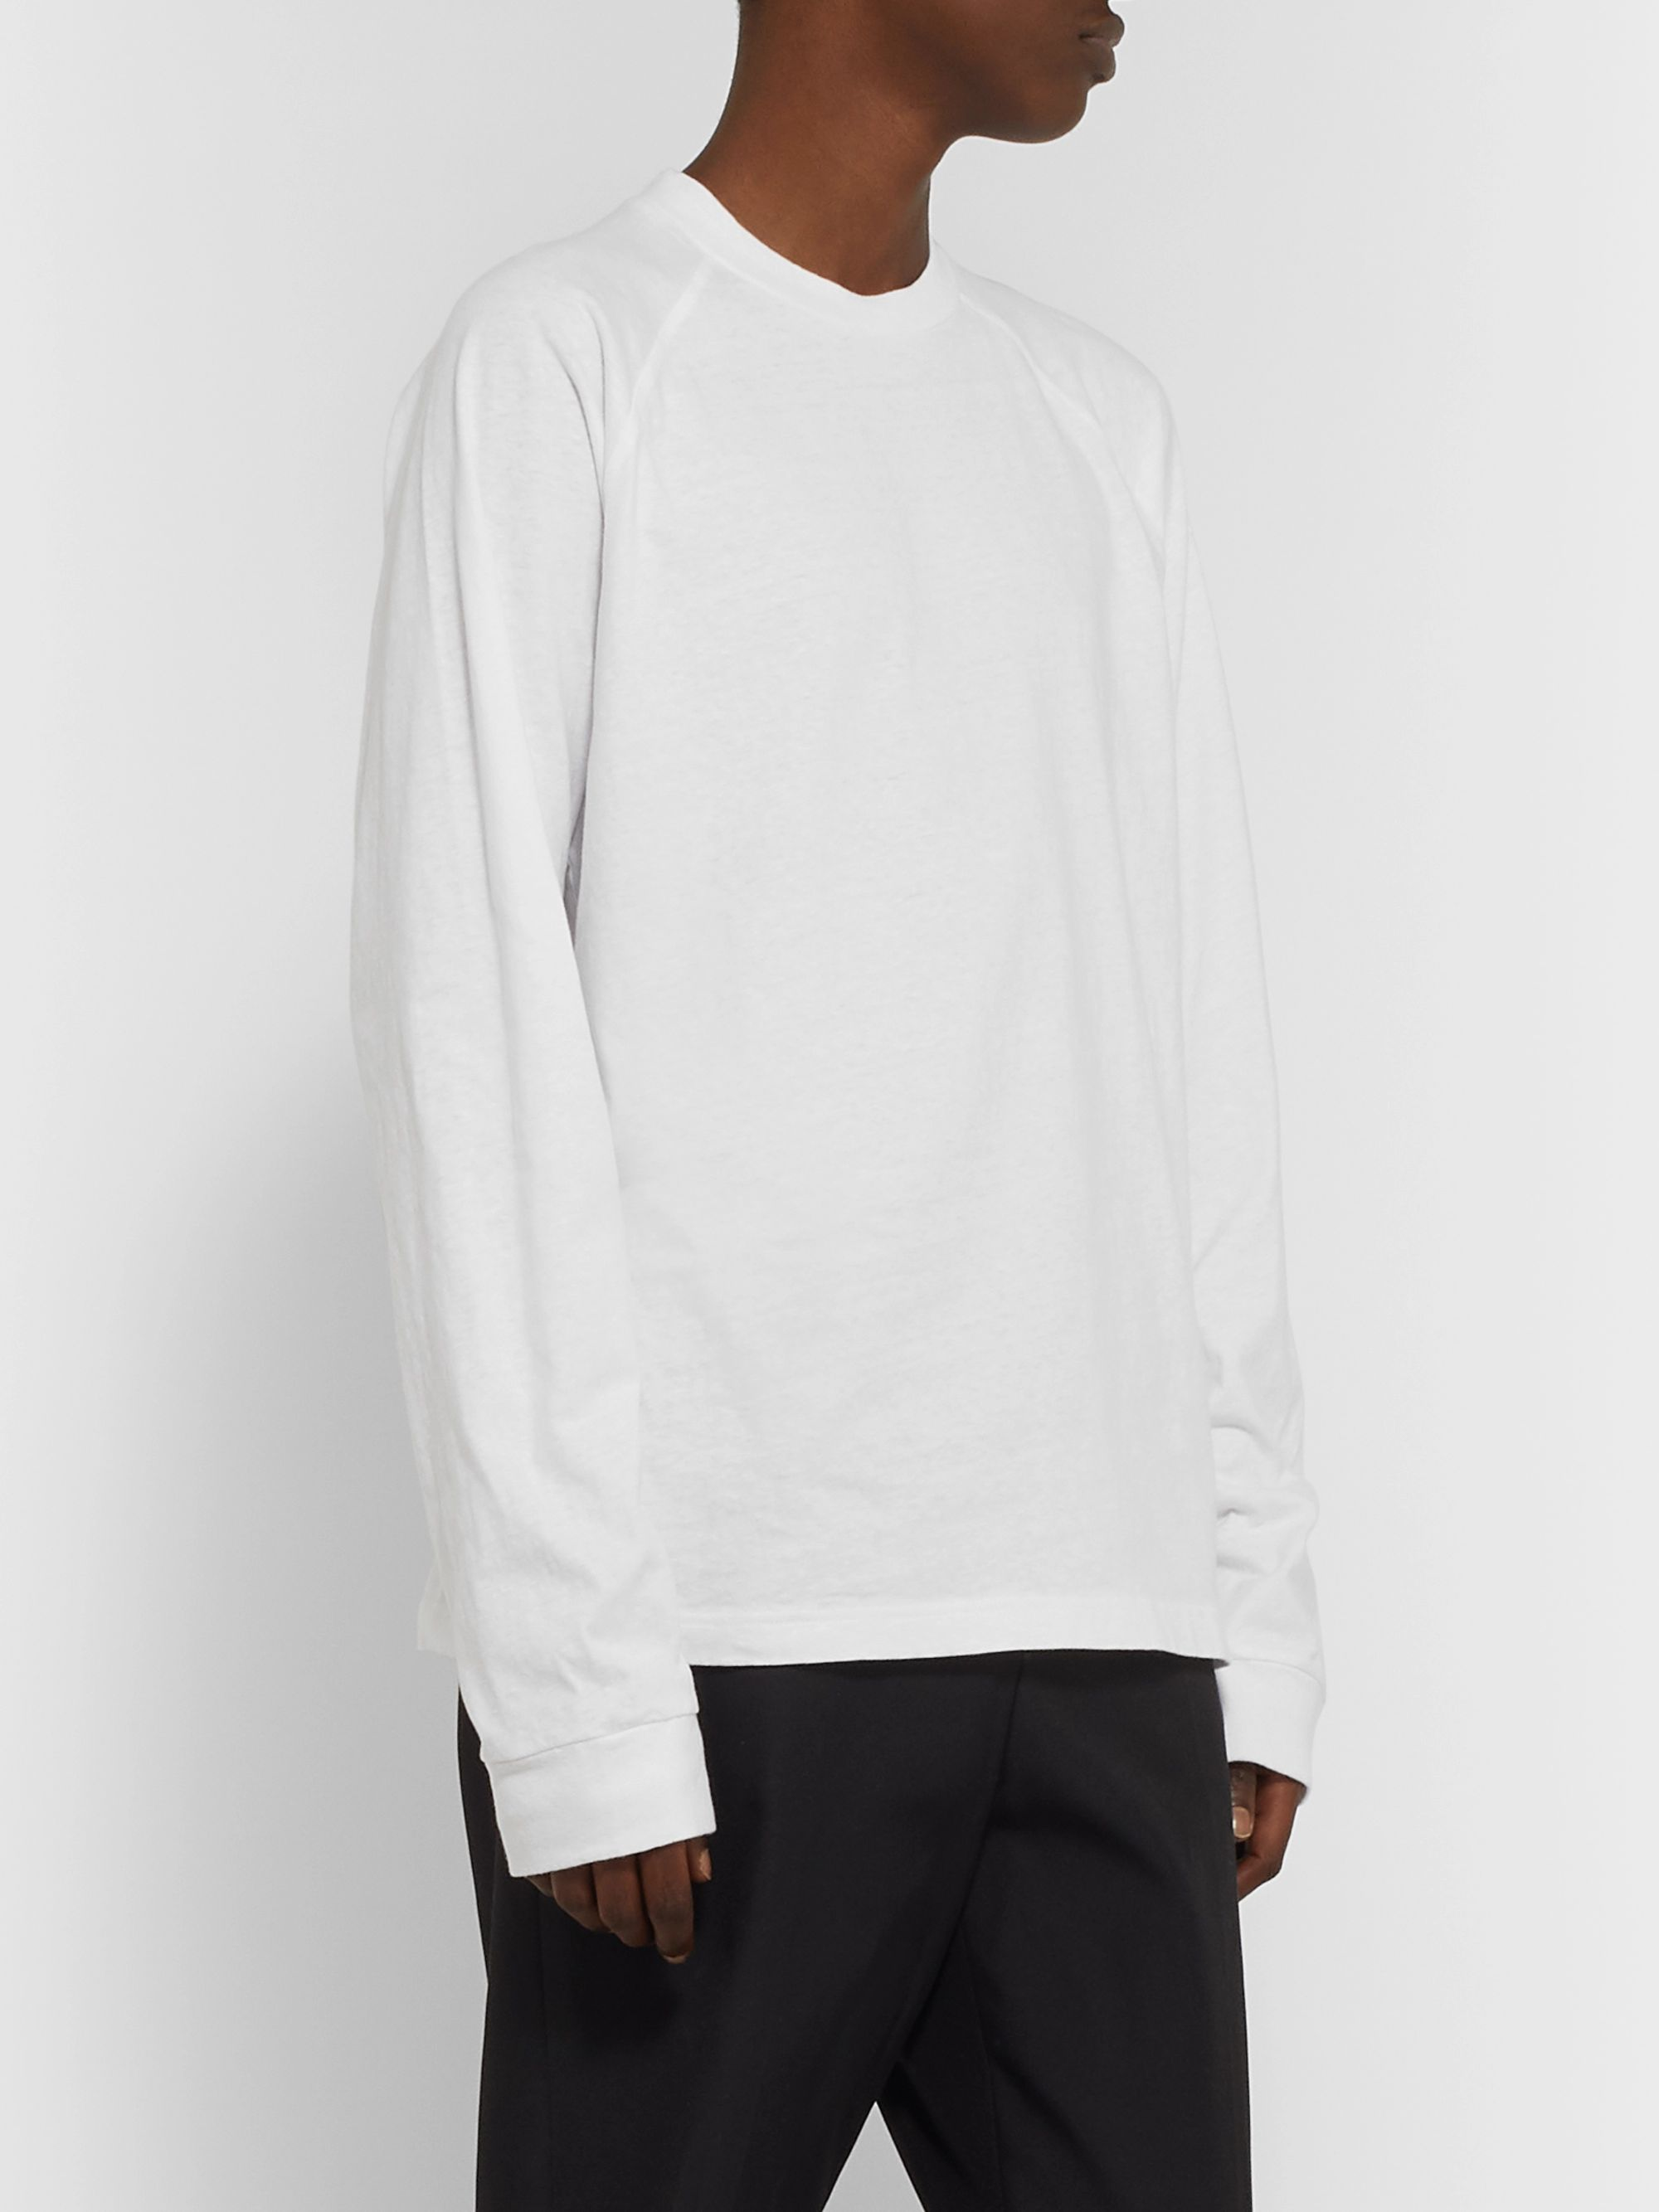 Acne Studios Logo-Appliquéd Cotton-Jersey T-Shirt